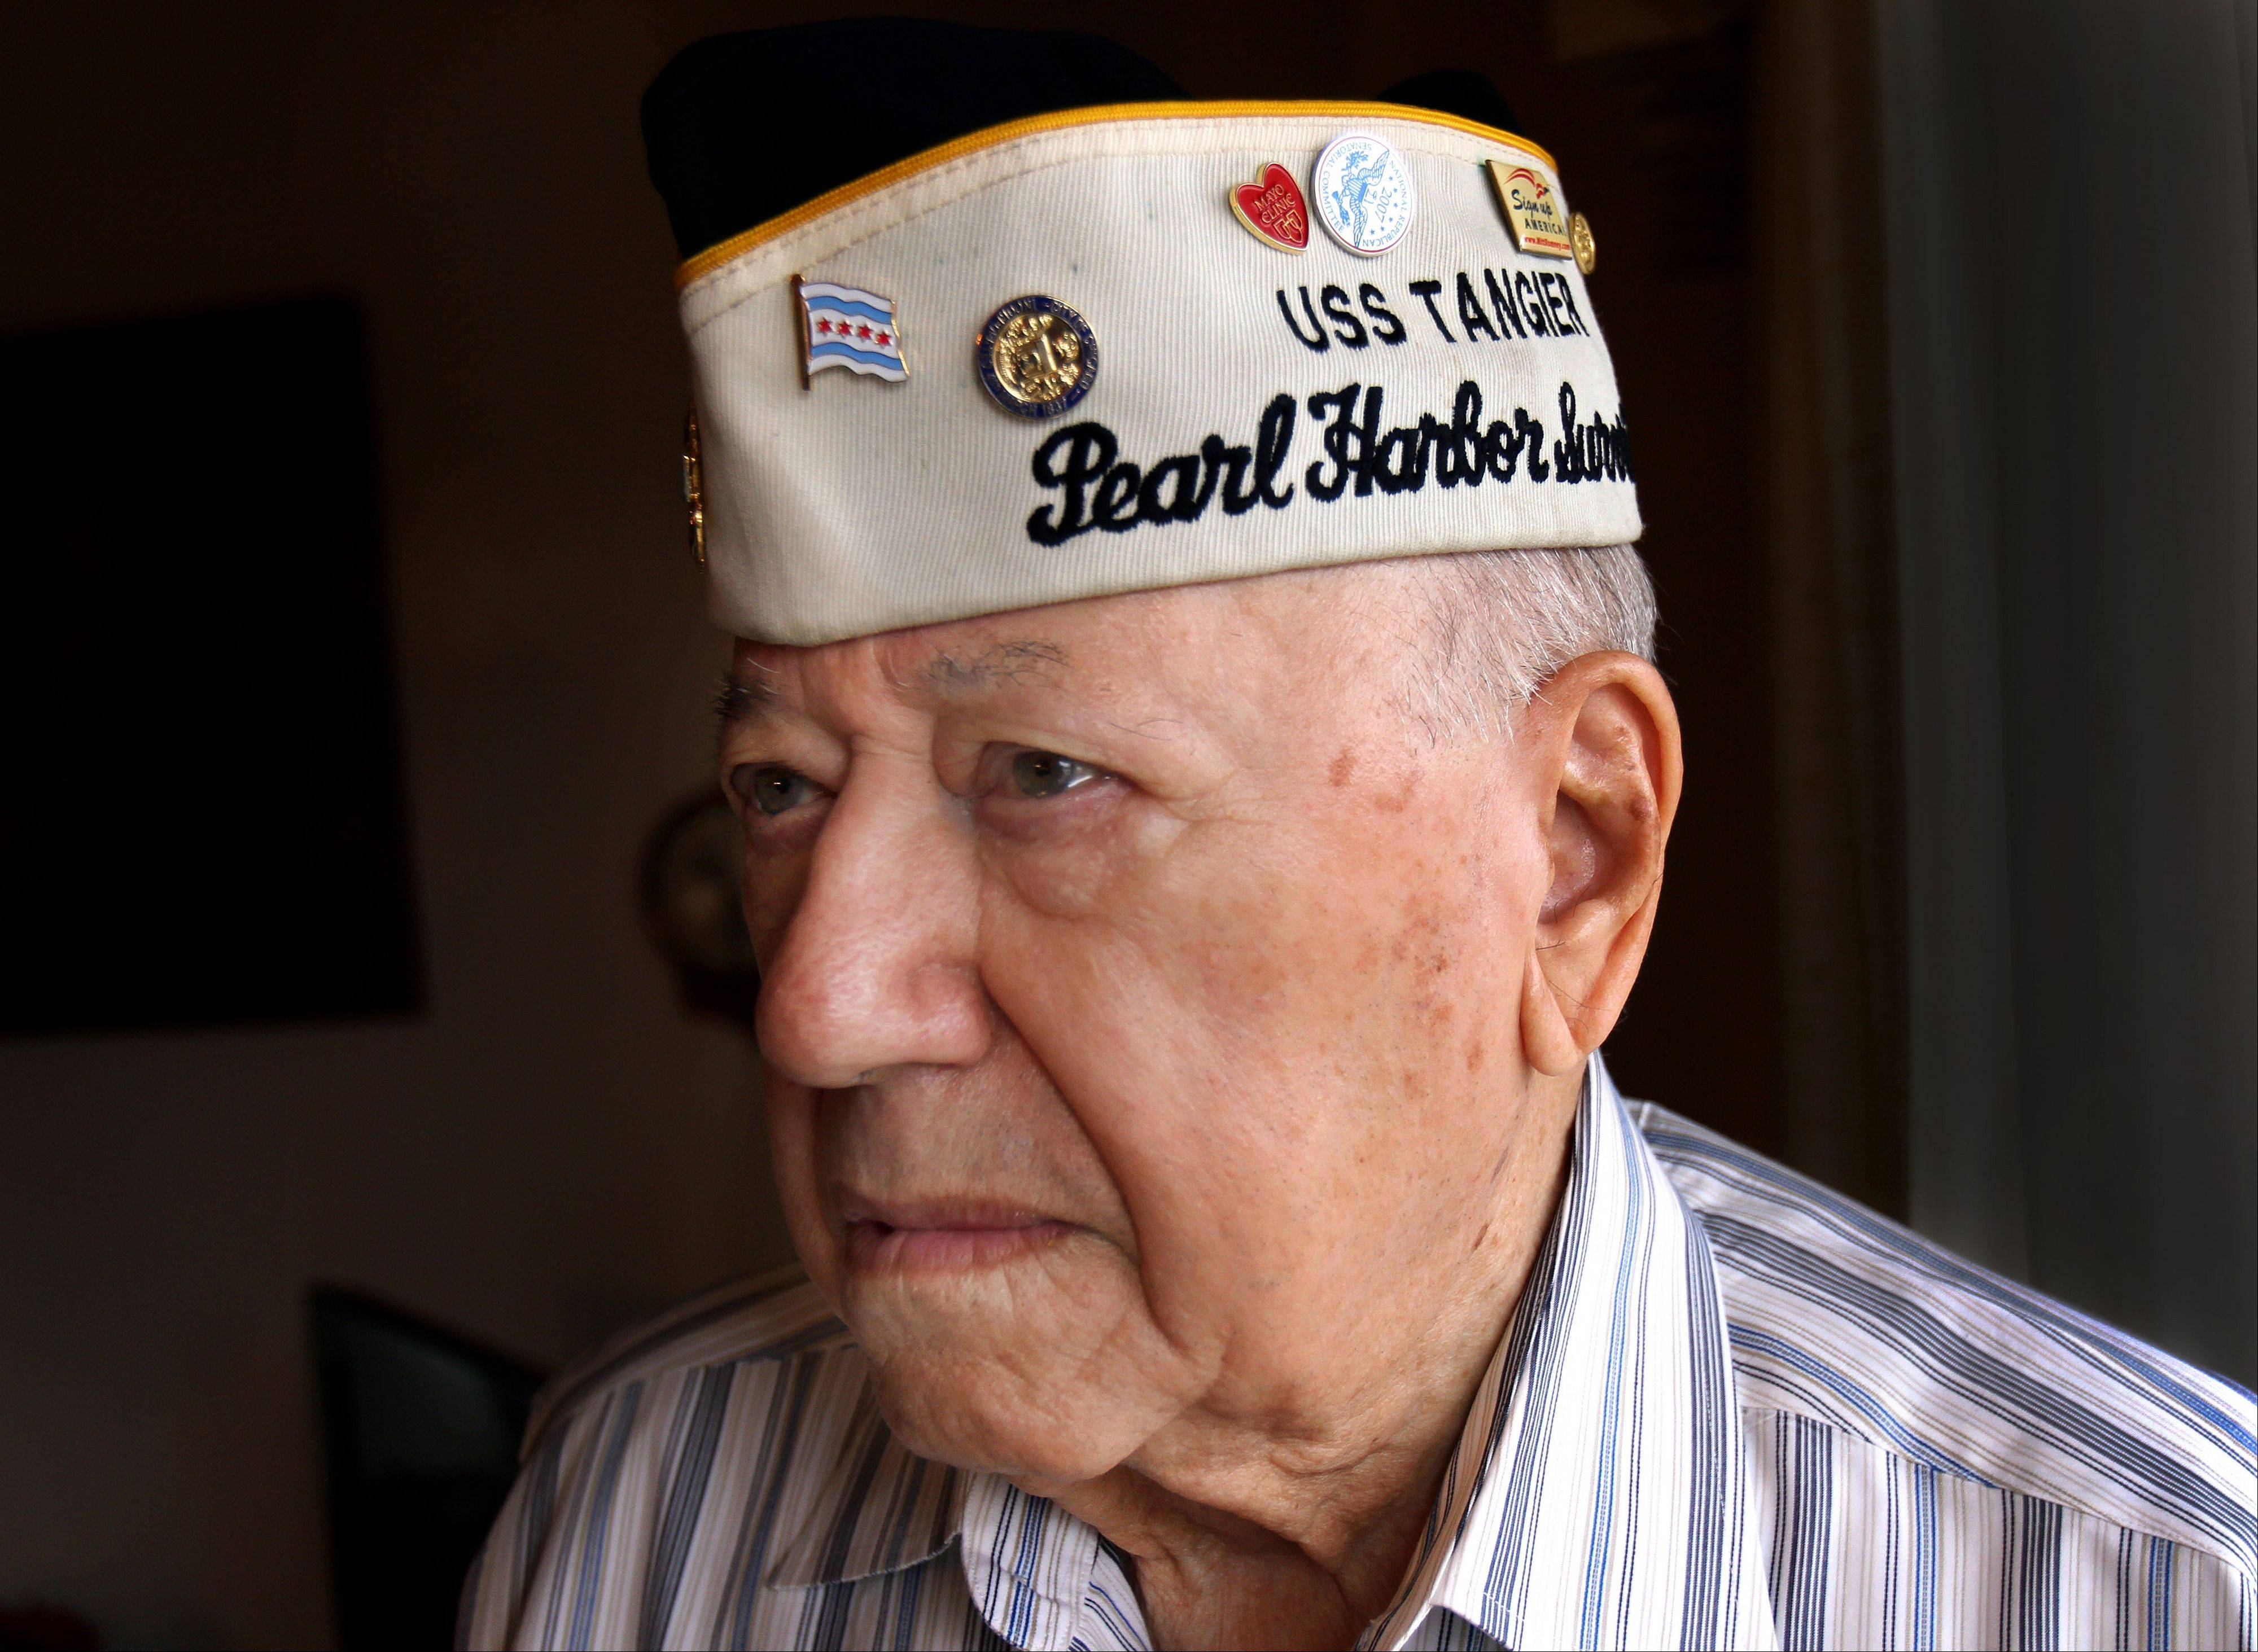 92-year-old Joe Triolo of Waukegan is one of the few remaining survivors of the Pearl Harbor attack. Triolo will be on hand today at a Des Plaines event commemorating the 71st anniversary of the attack.